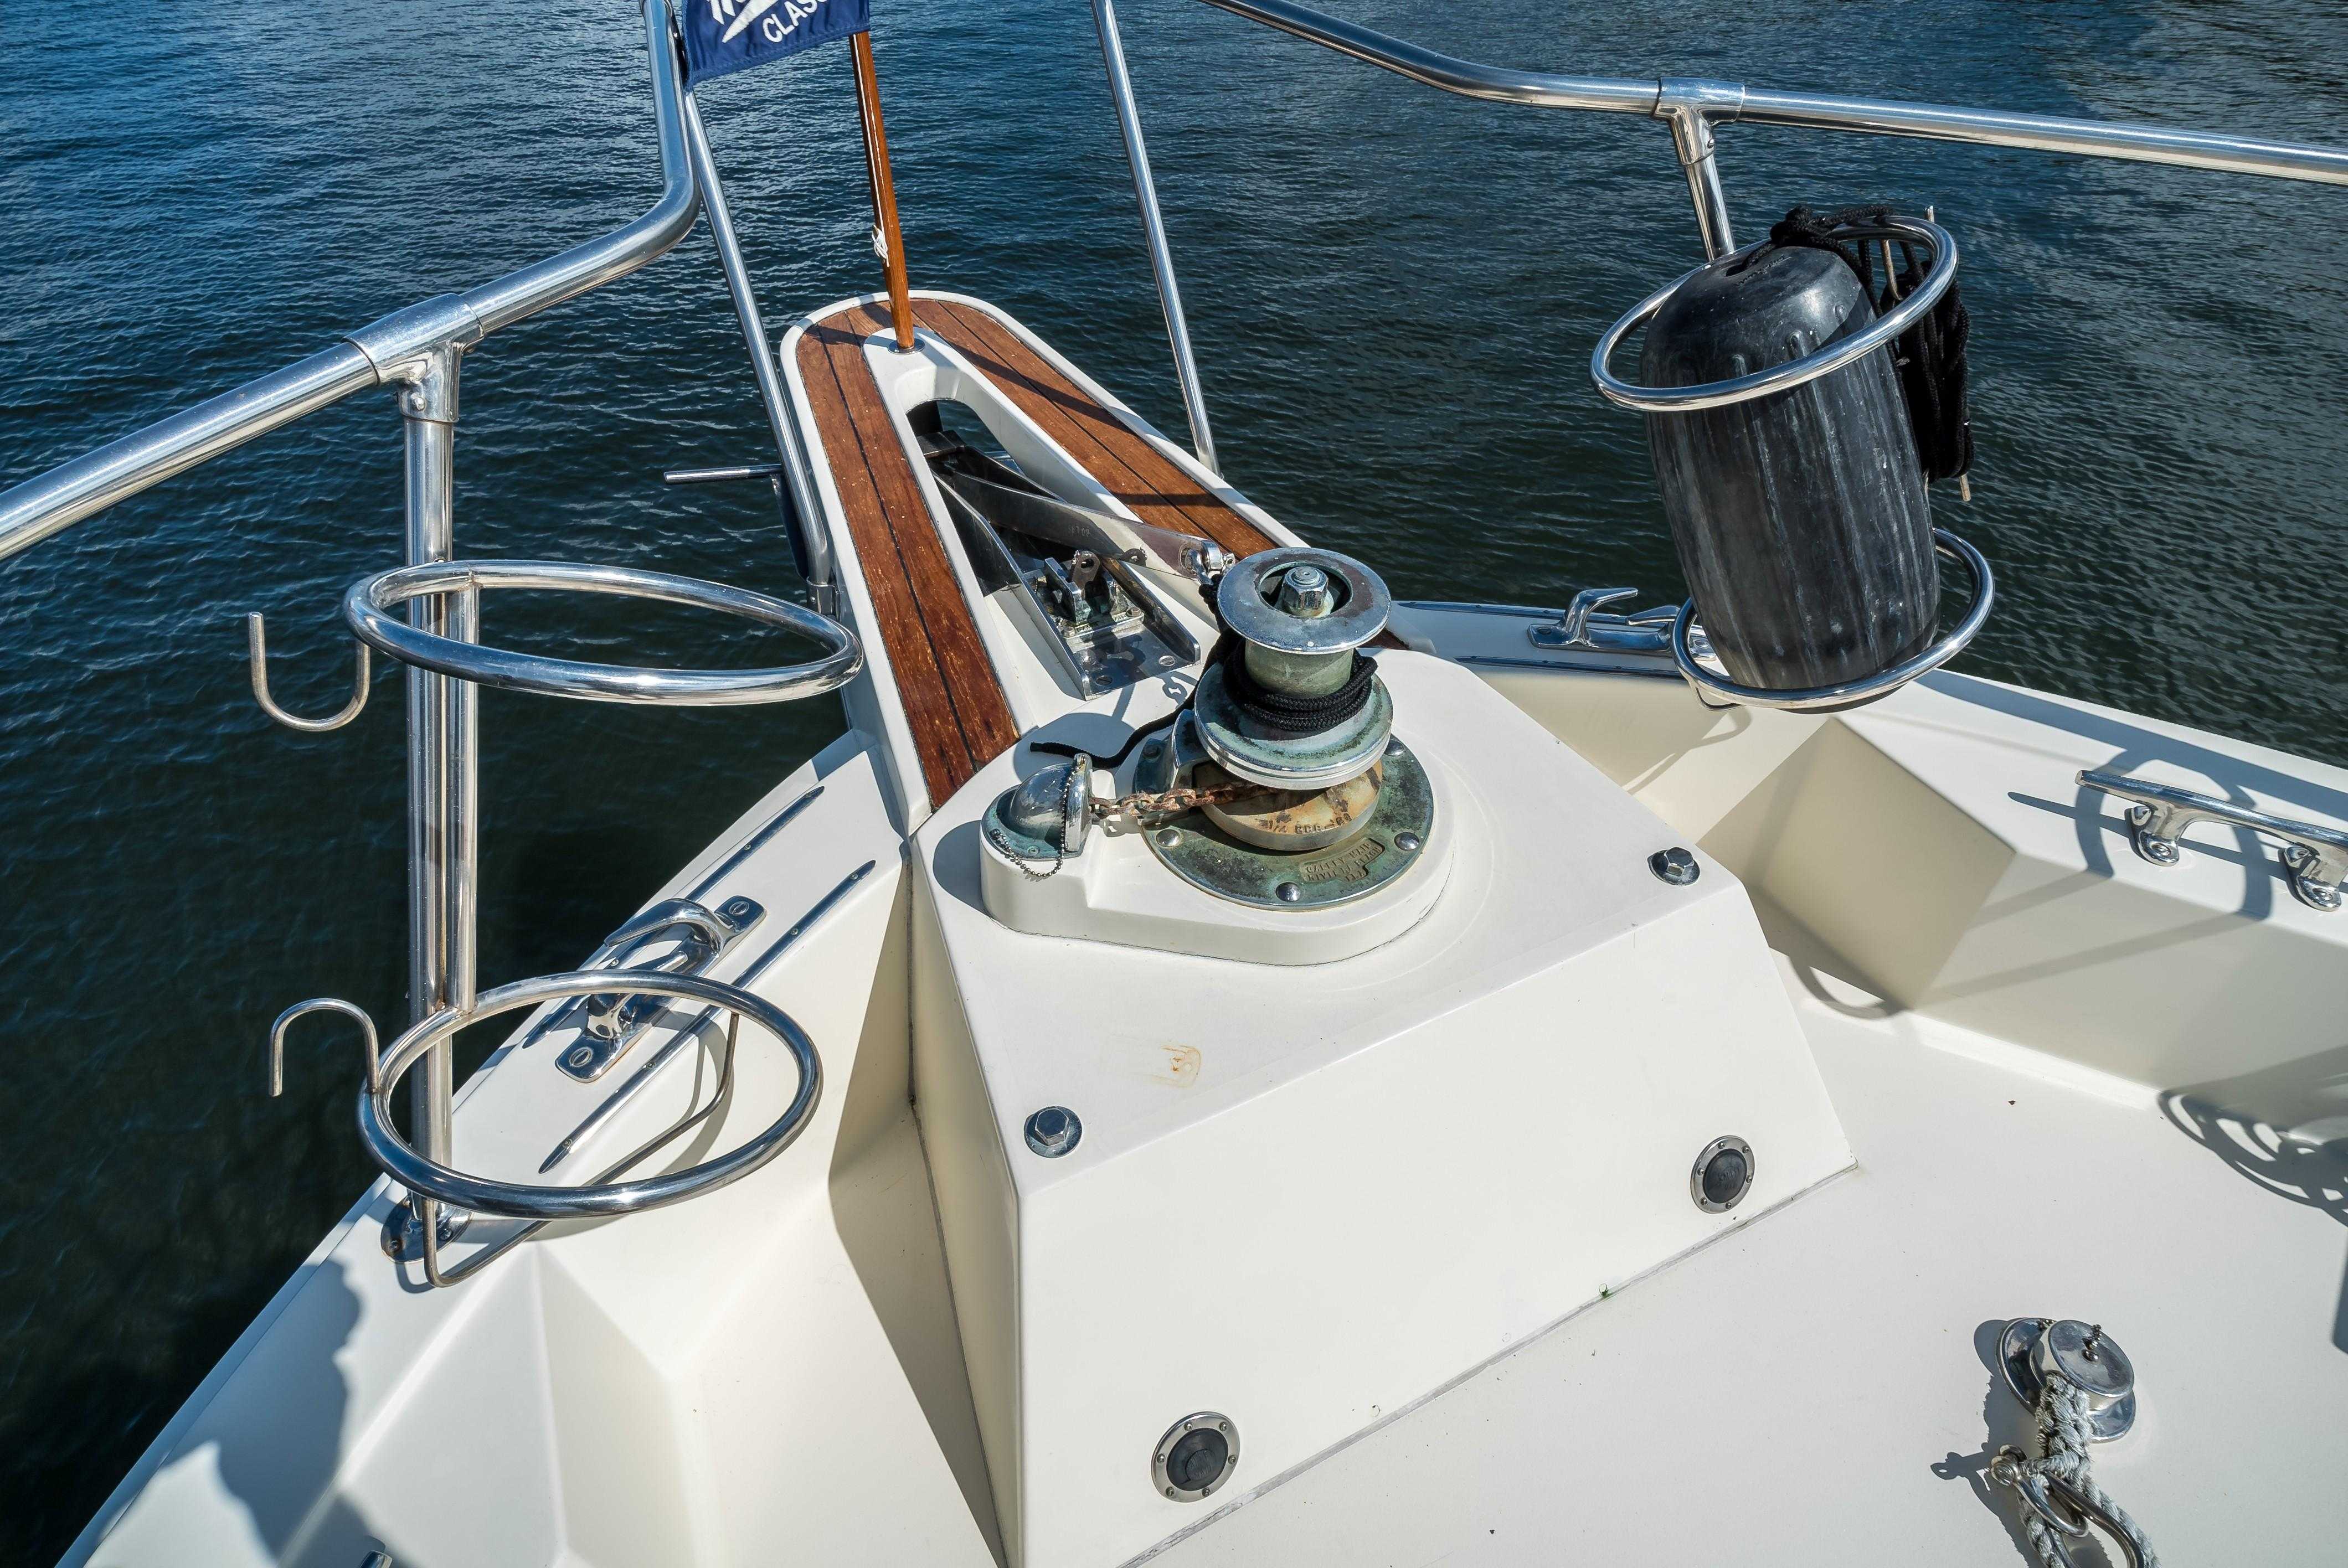 Windlass and Pulpit